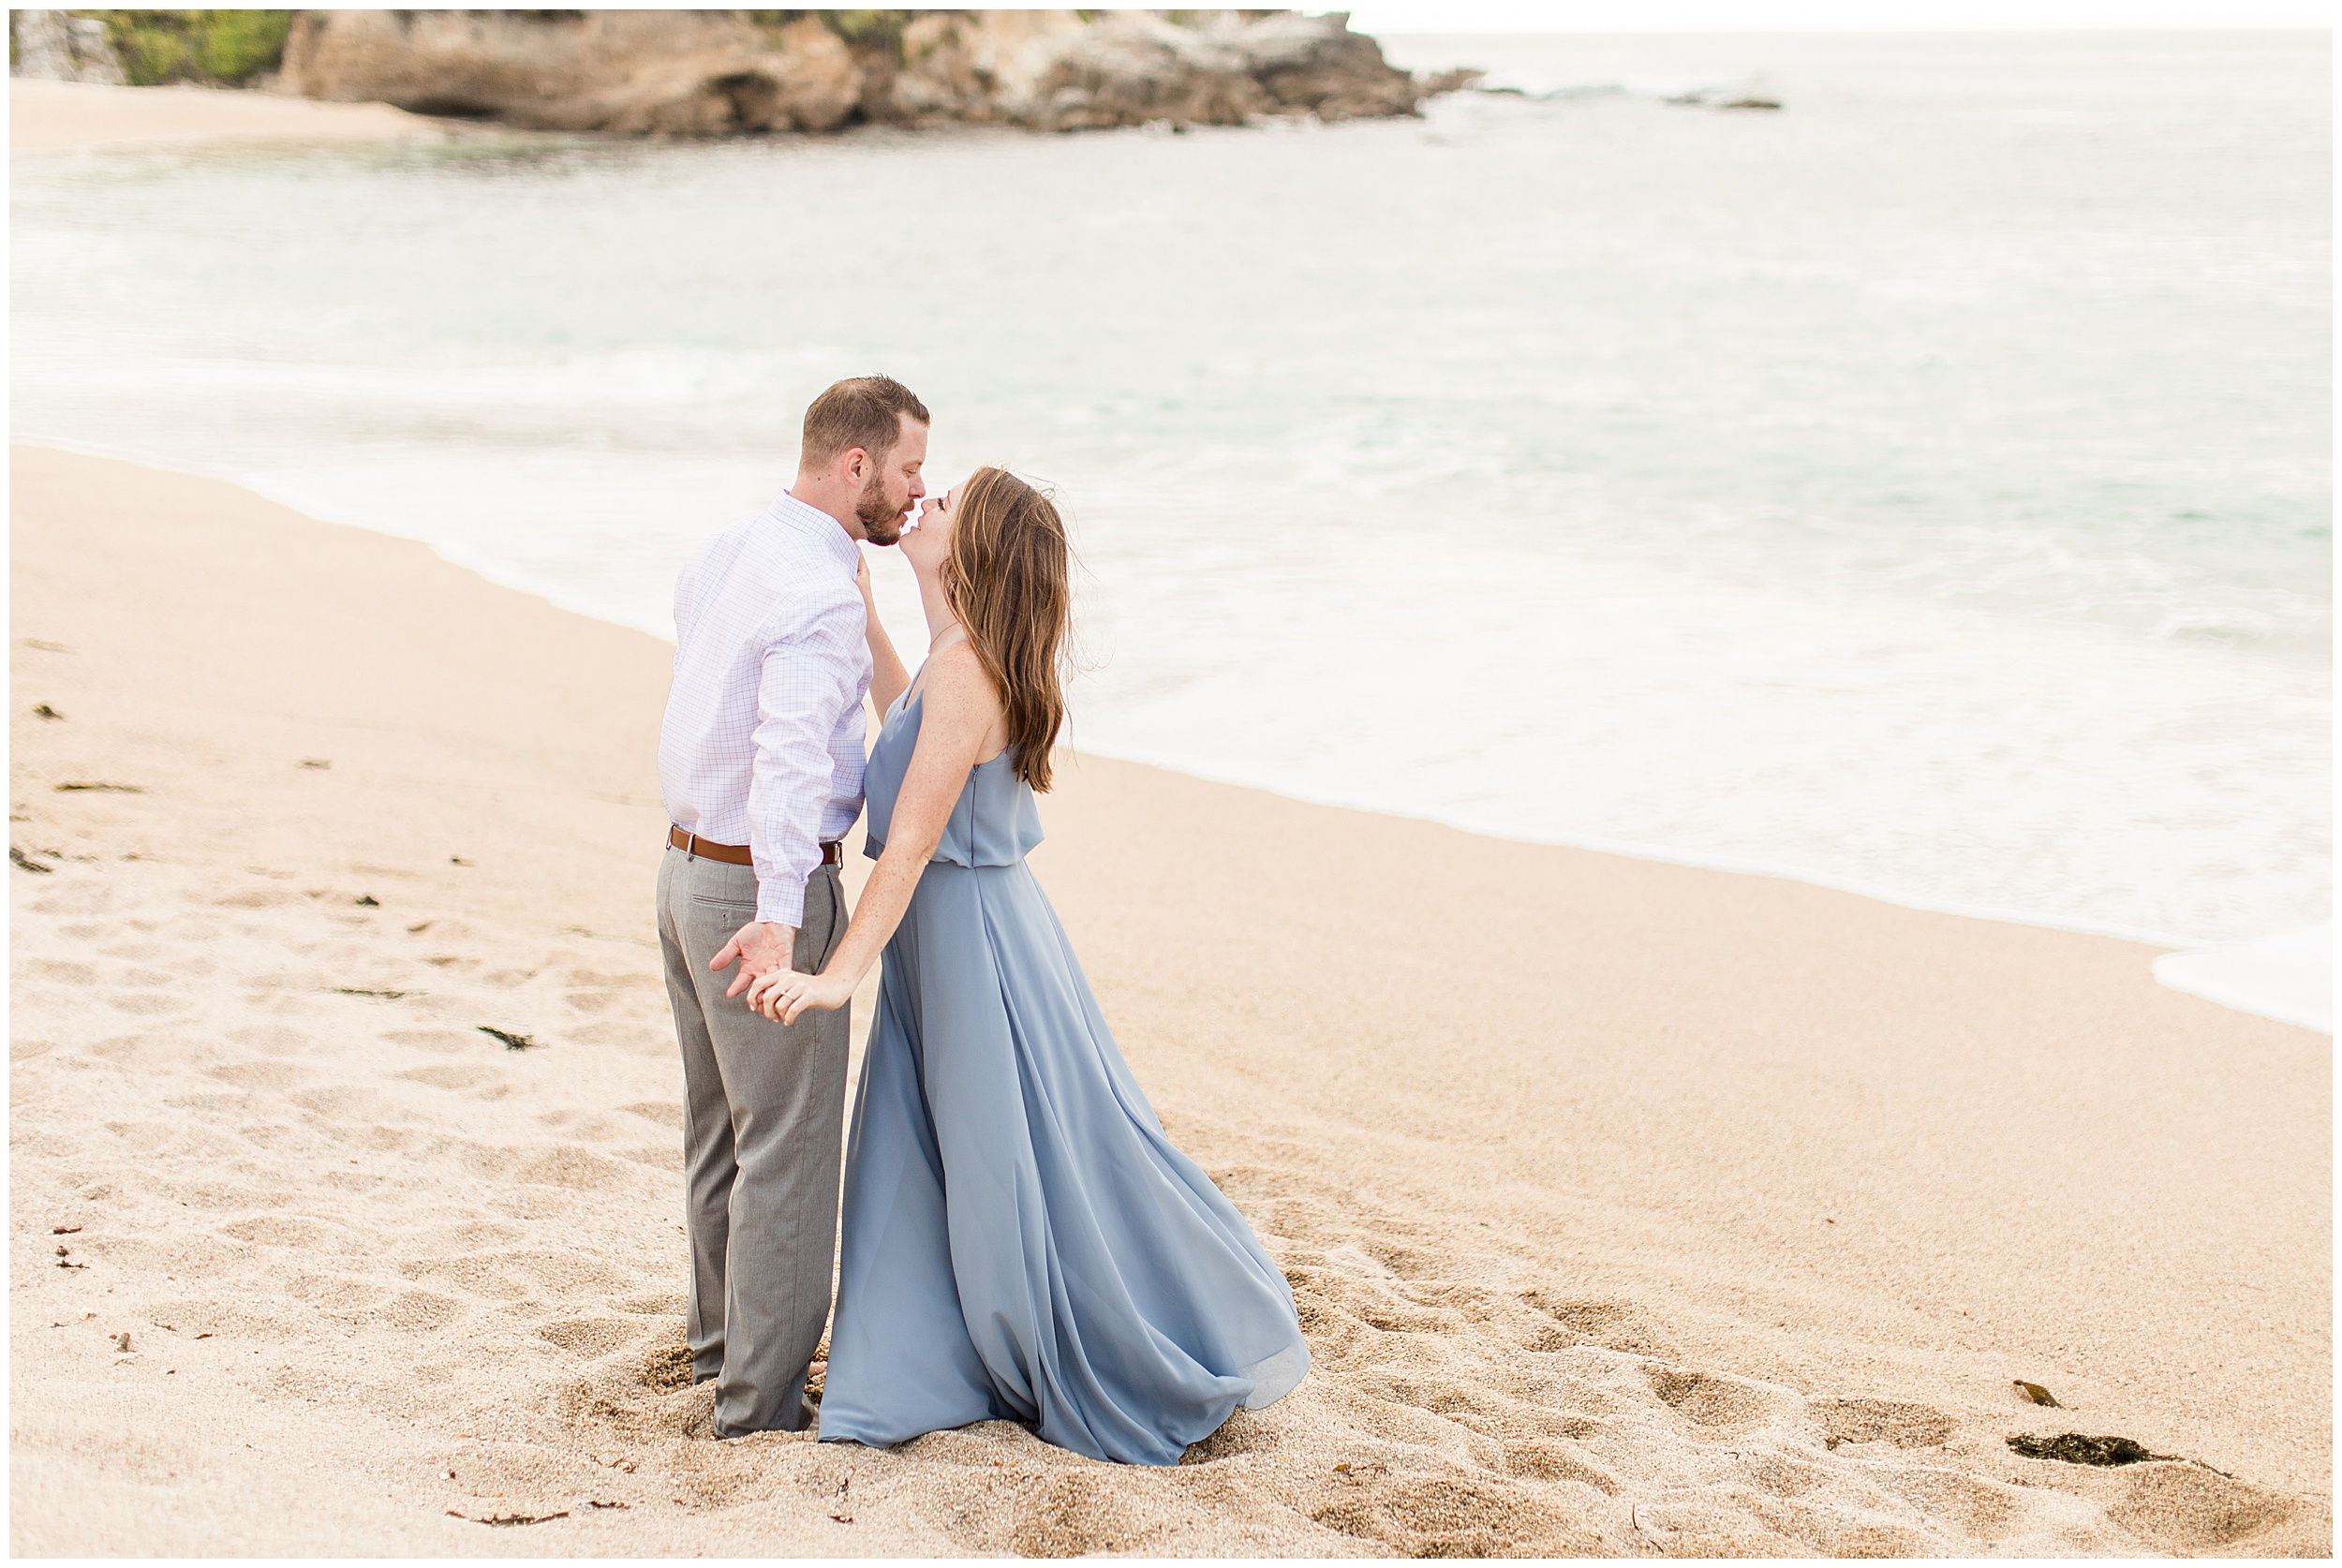 2019 carmel by the sea surprise proposal engagement session wedding photographer angela sue photography_0028.jpg